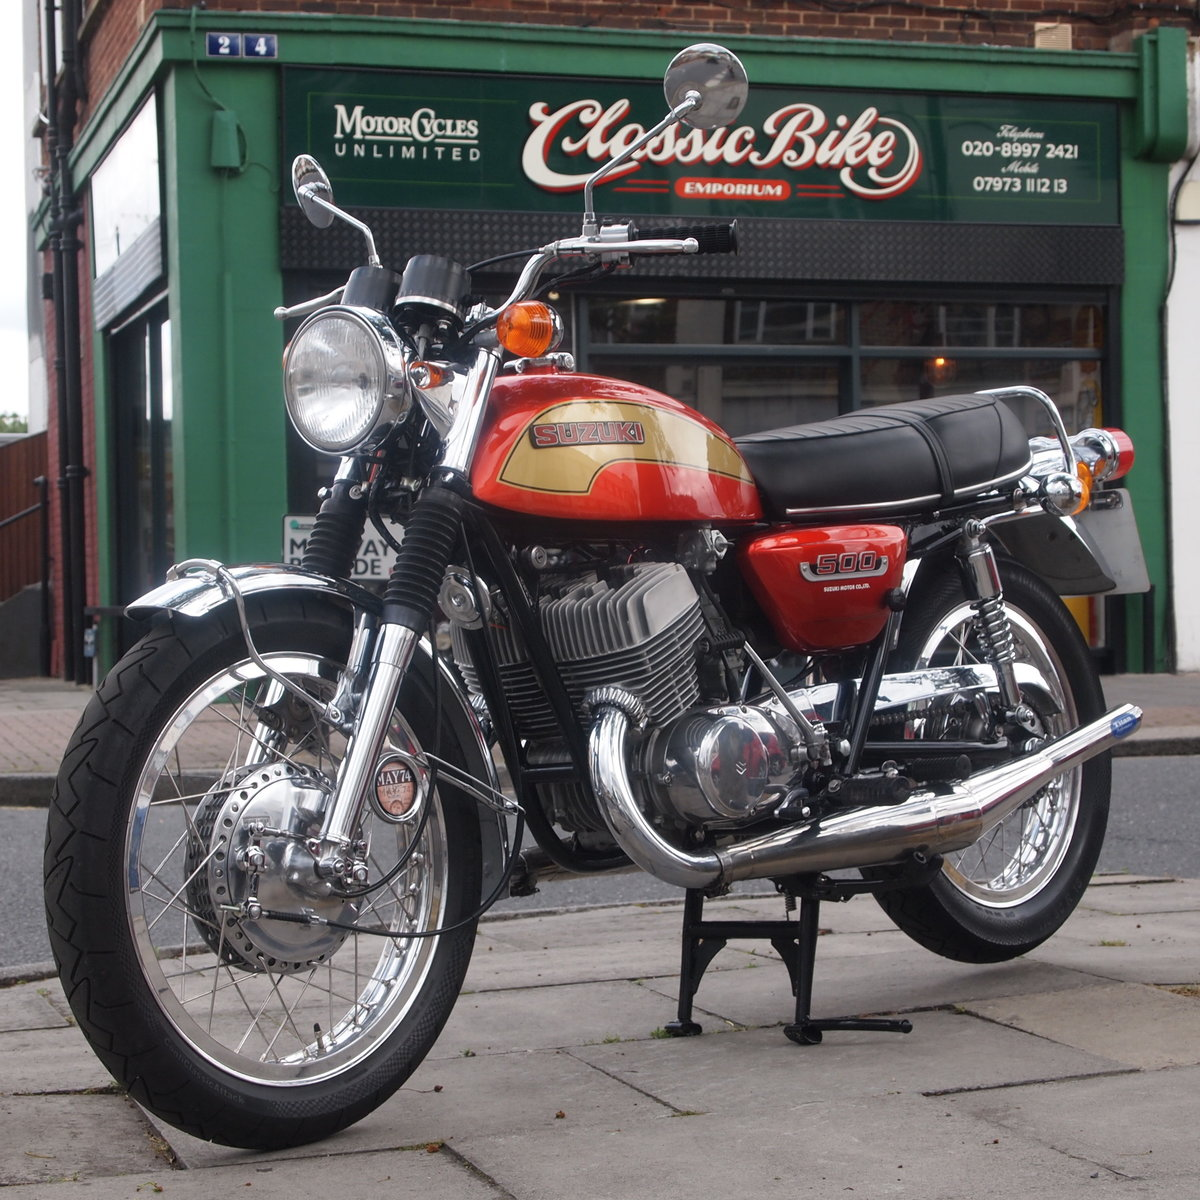 1974 Suzuki T500 In Beautiful Condition, RESERVED FOR TERRY. SOLD (picture 2 of 6)